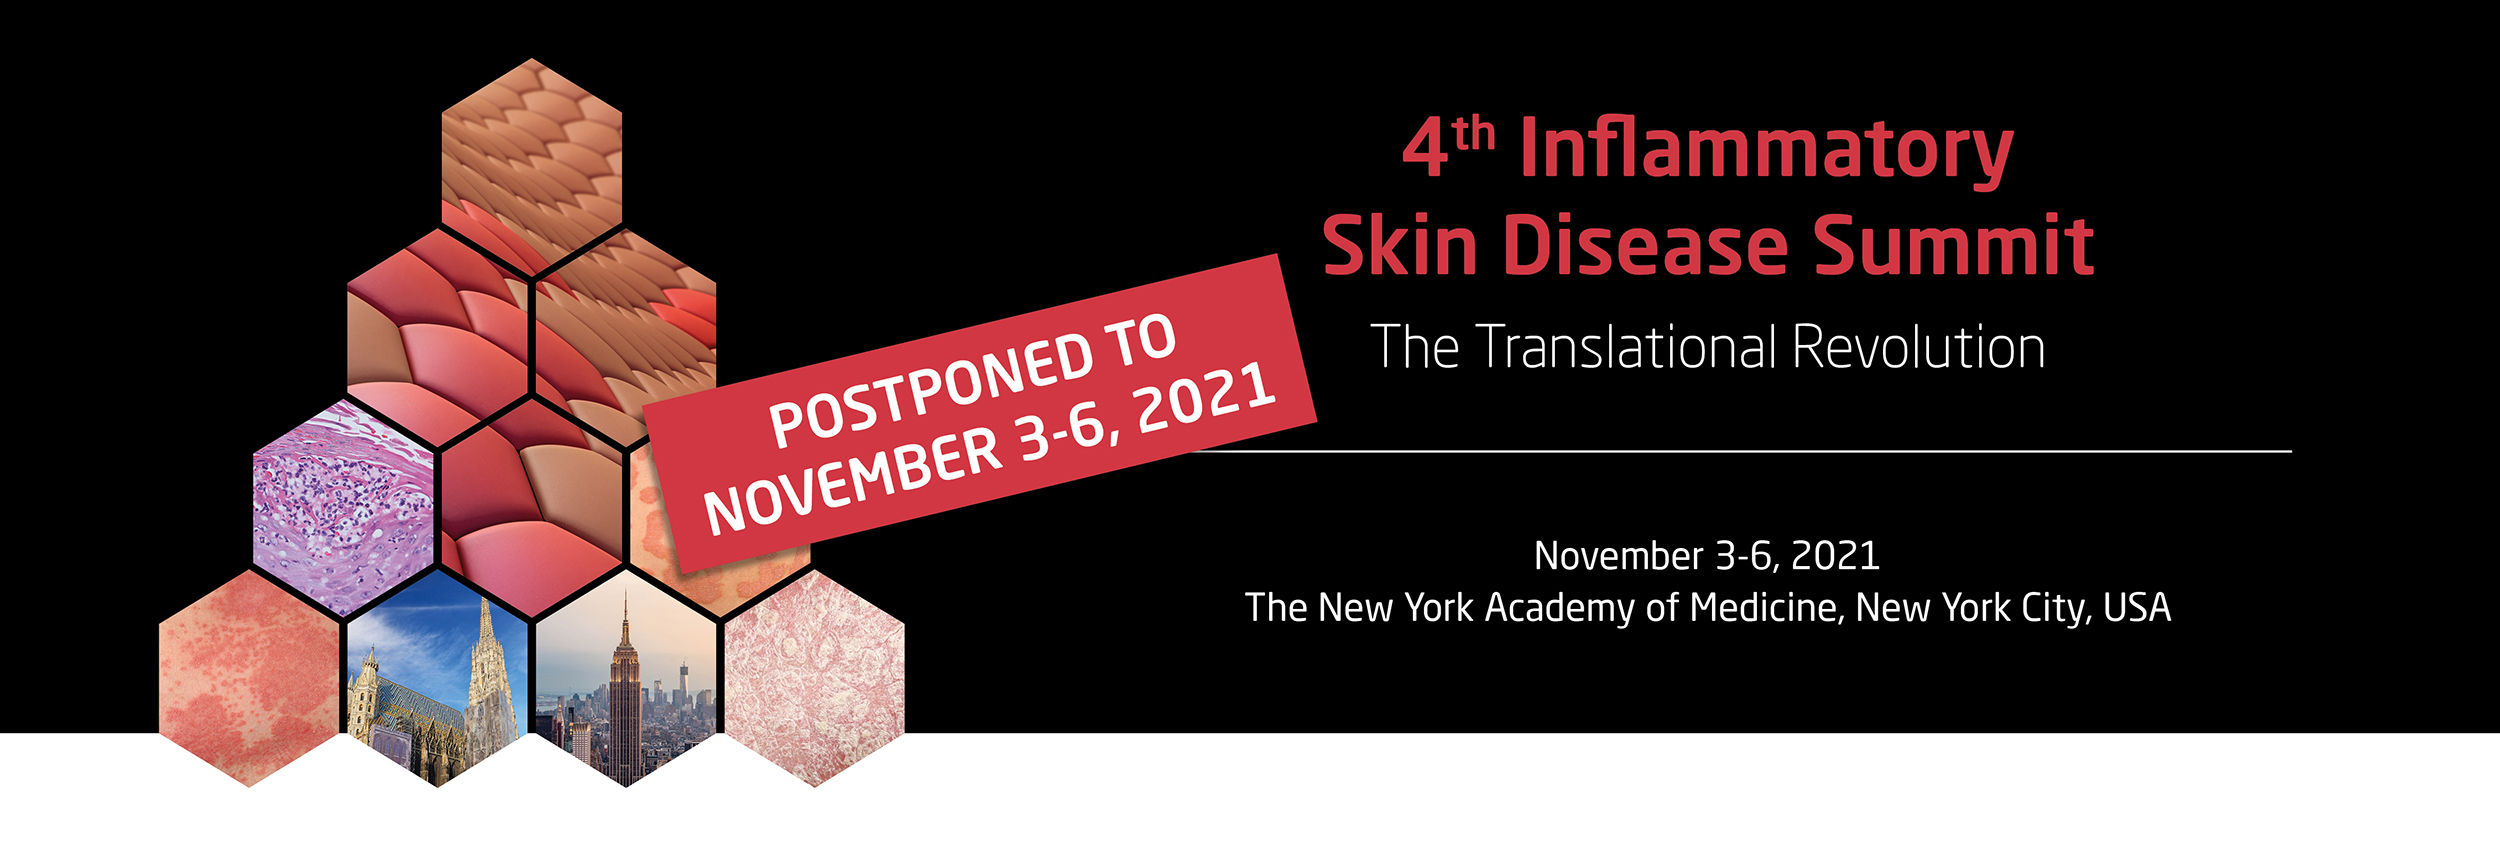 4th Inflammatory Skin Diseases Summit 2020: The Translational Revolution 	 Banner